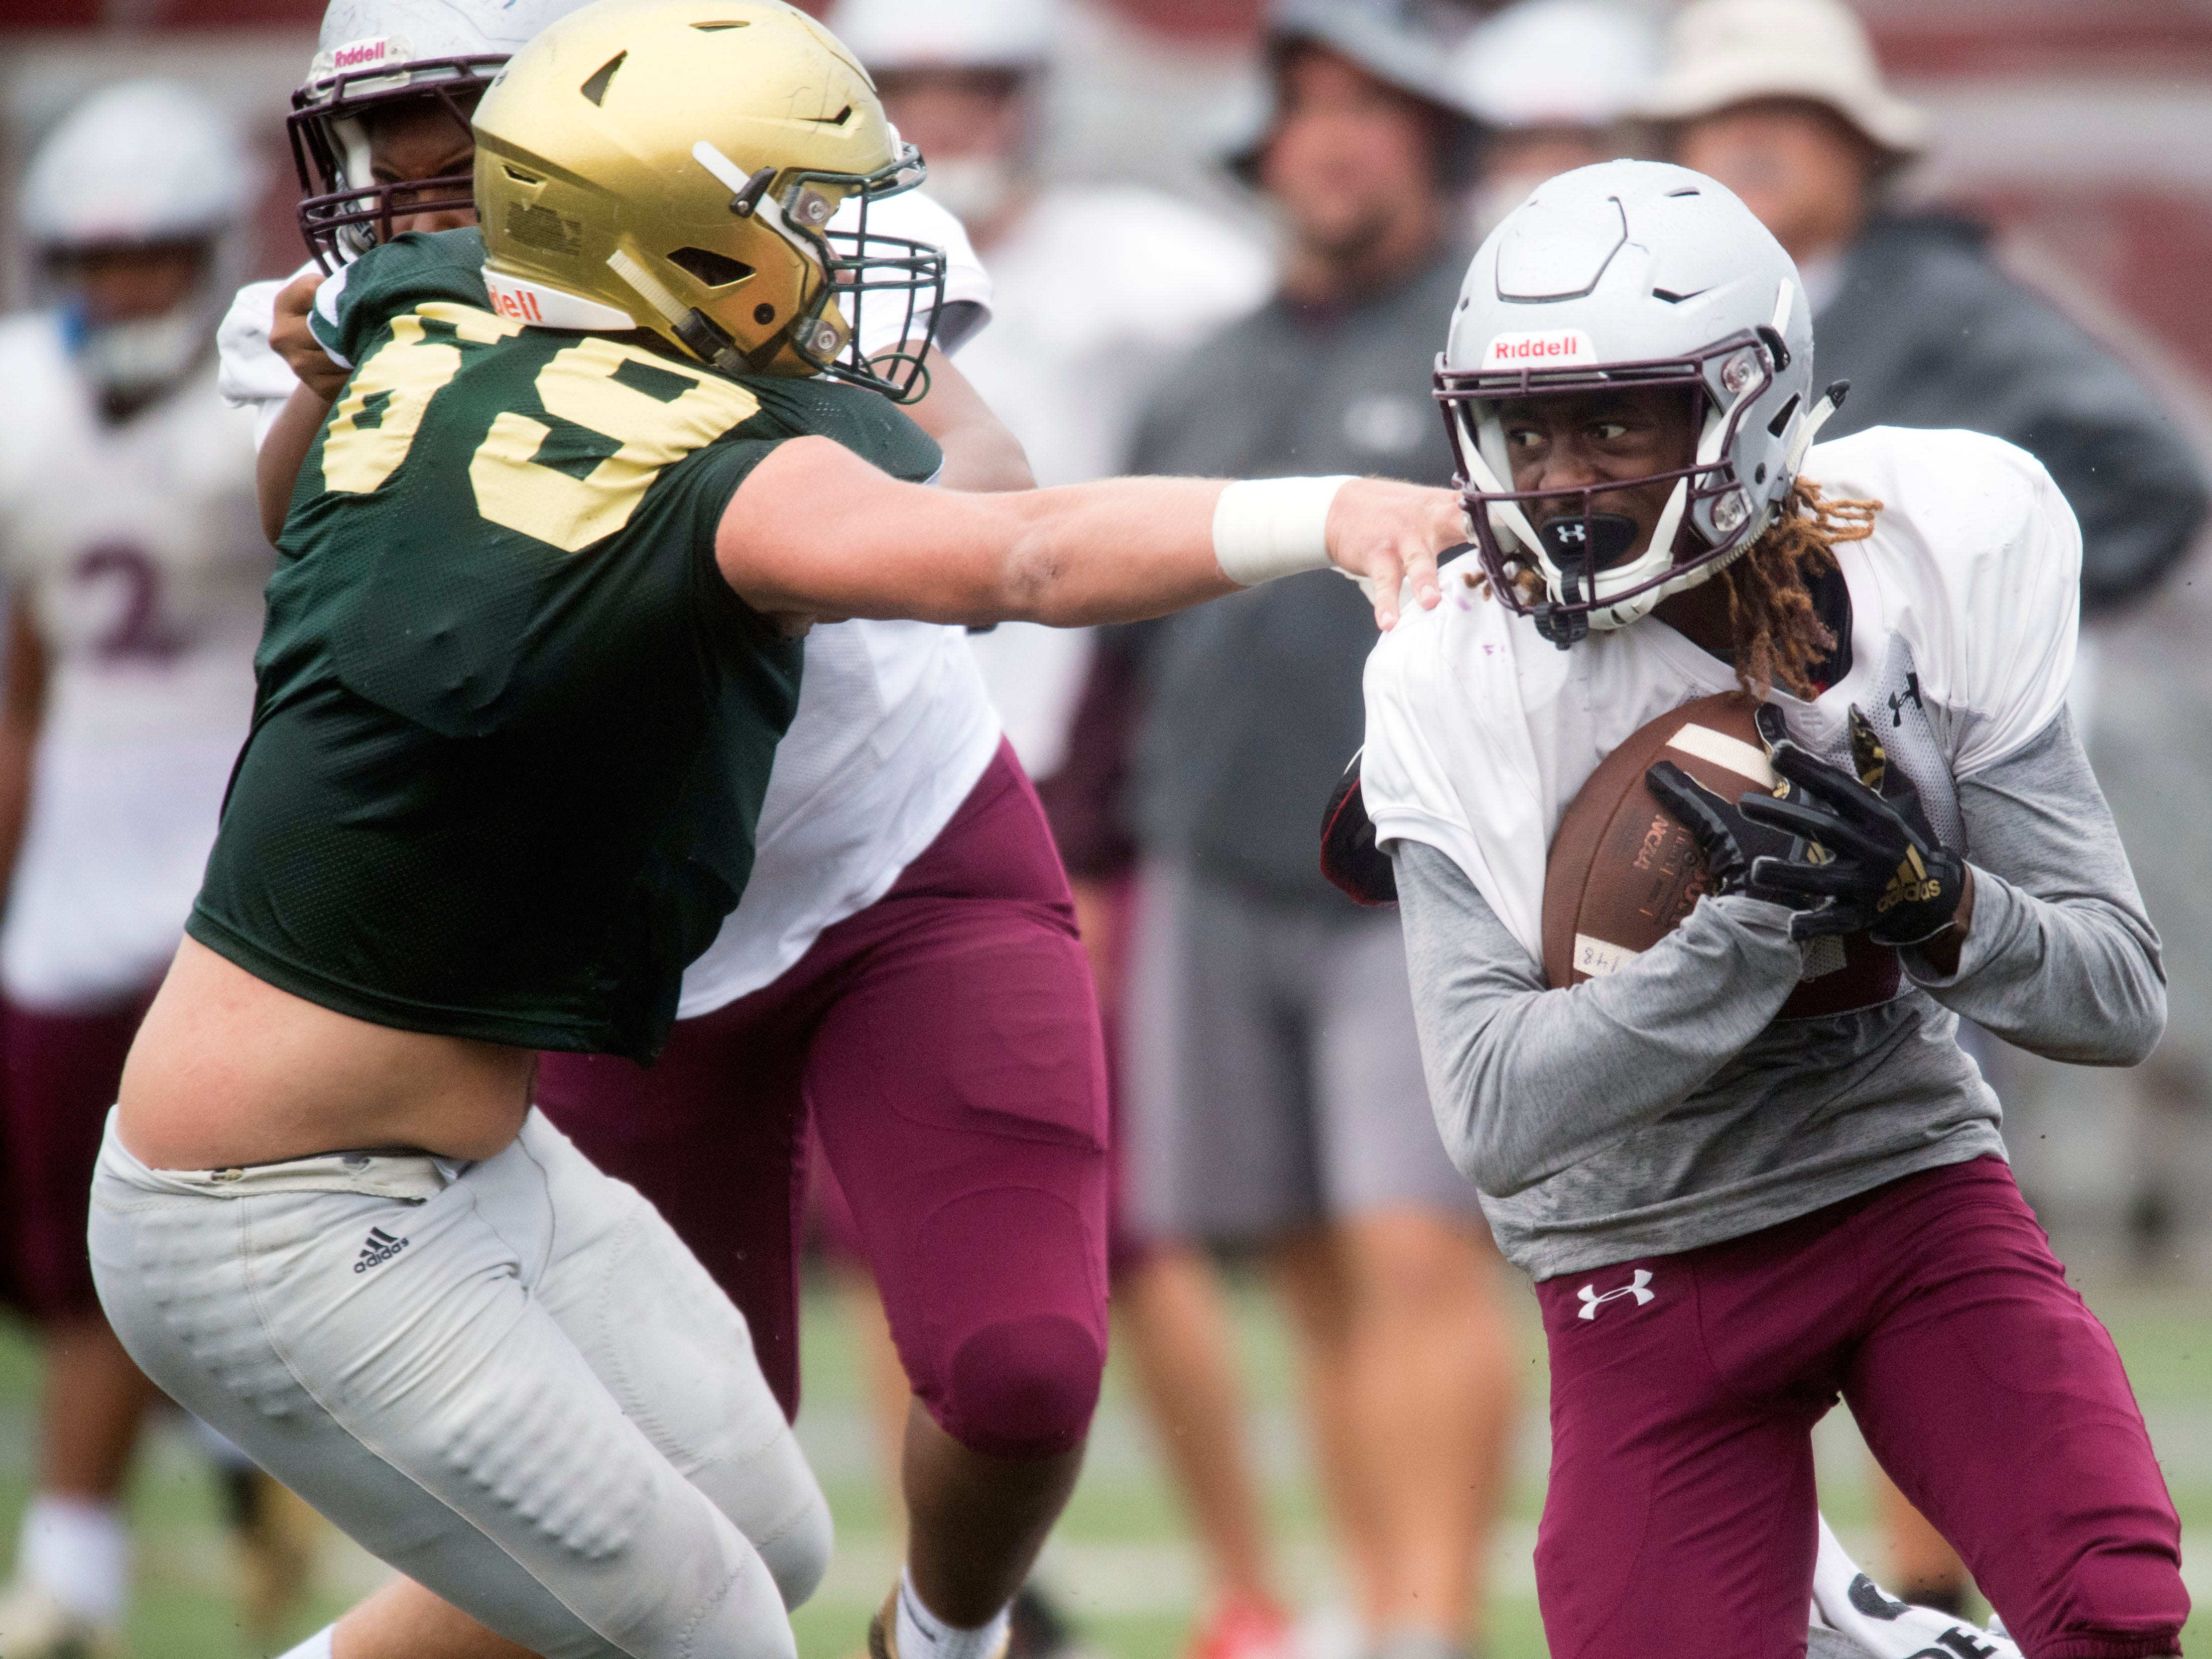 Alcoa's C.J. Armstrong (5) on a run against Knoxville Catholic during a football scrimmage on Tuesday, July 31, 2018.